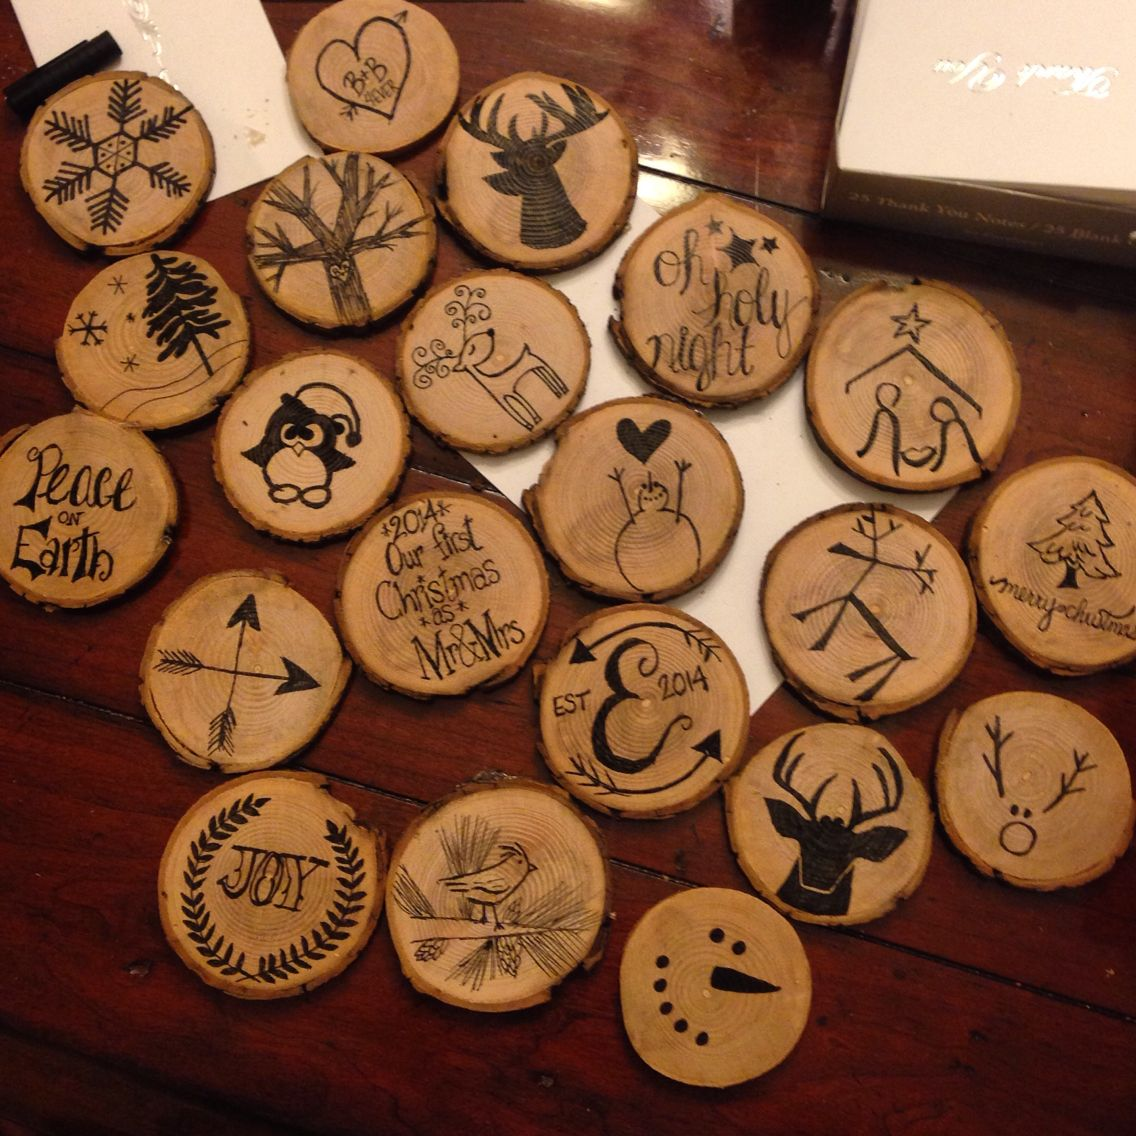 Diy wooden disc ornaments. So easy! Buy wooden discs and